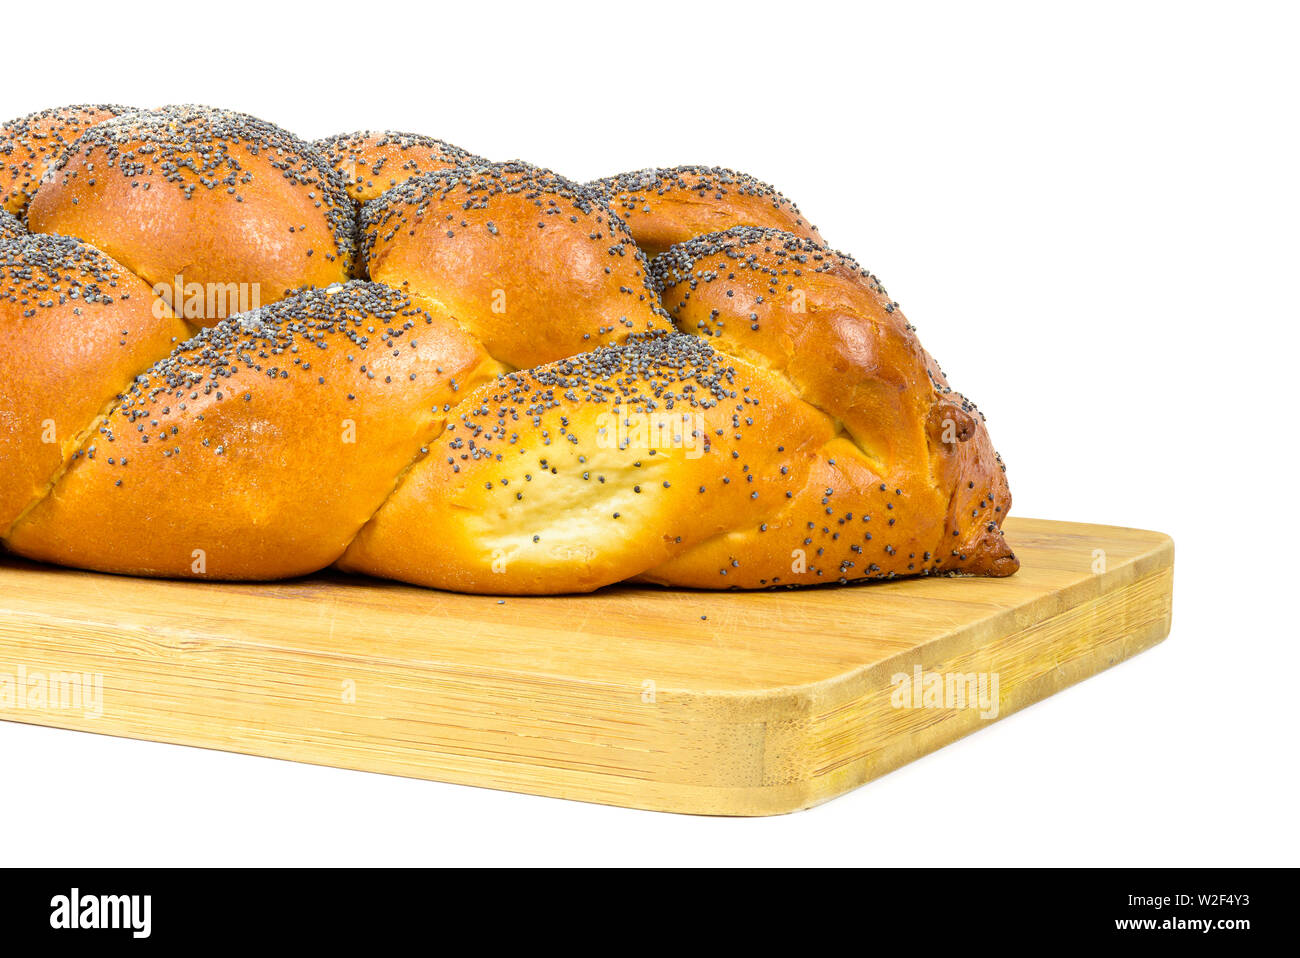 Closeup of fresh whole challah bread on chopping board isolated on white background with clipping path Stock Photo